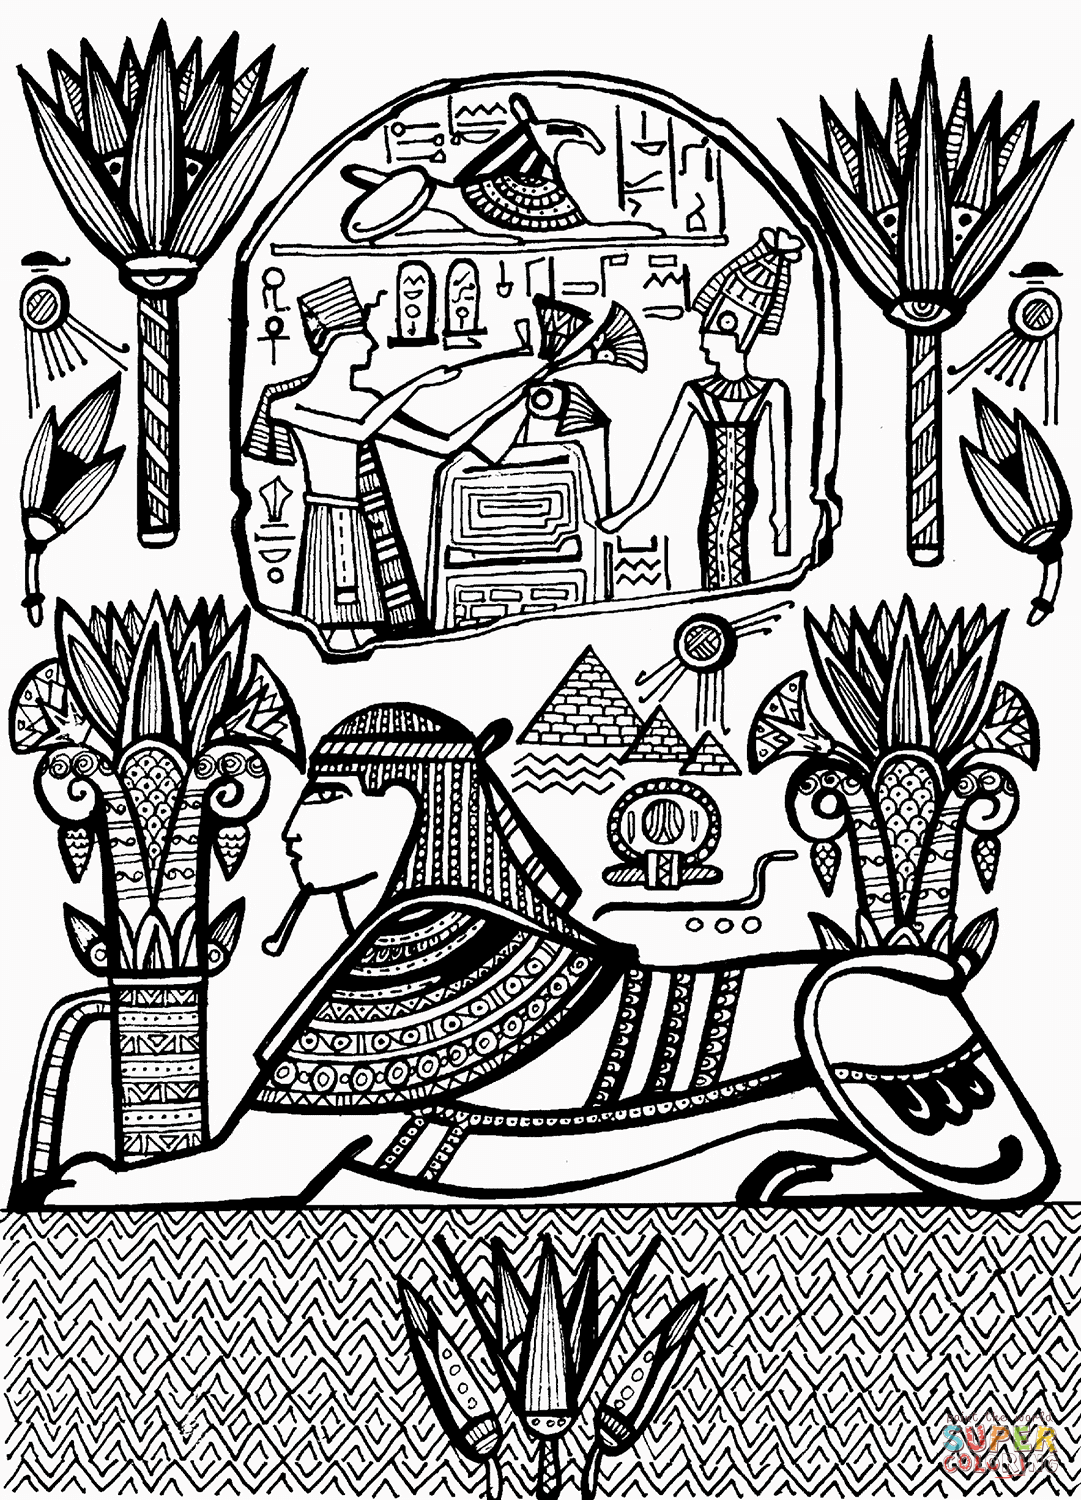 1081x1500 Free Sphinx Coloring Page Famous Places Pyramids The Statue